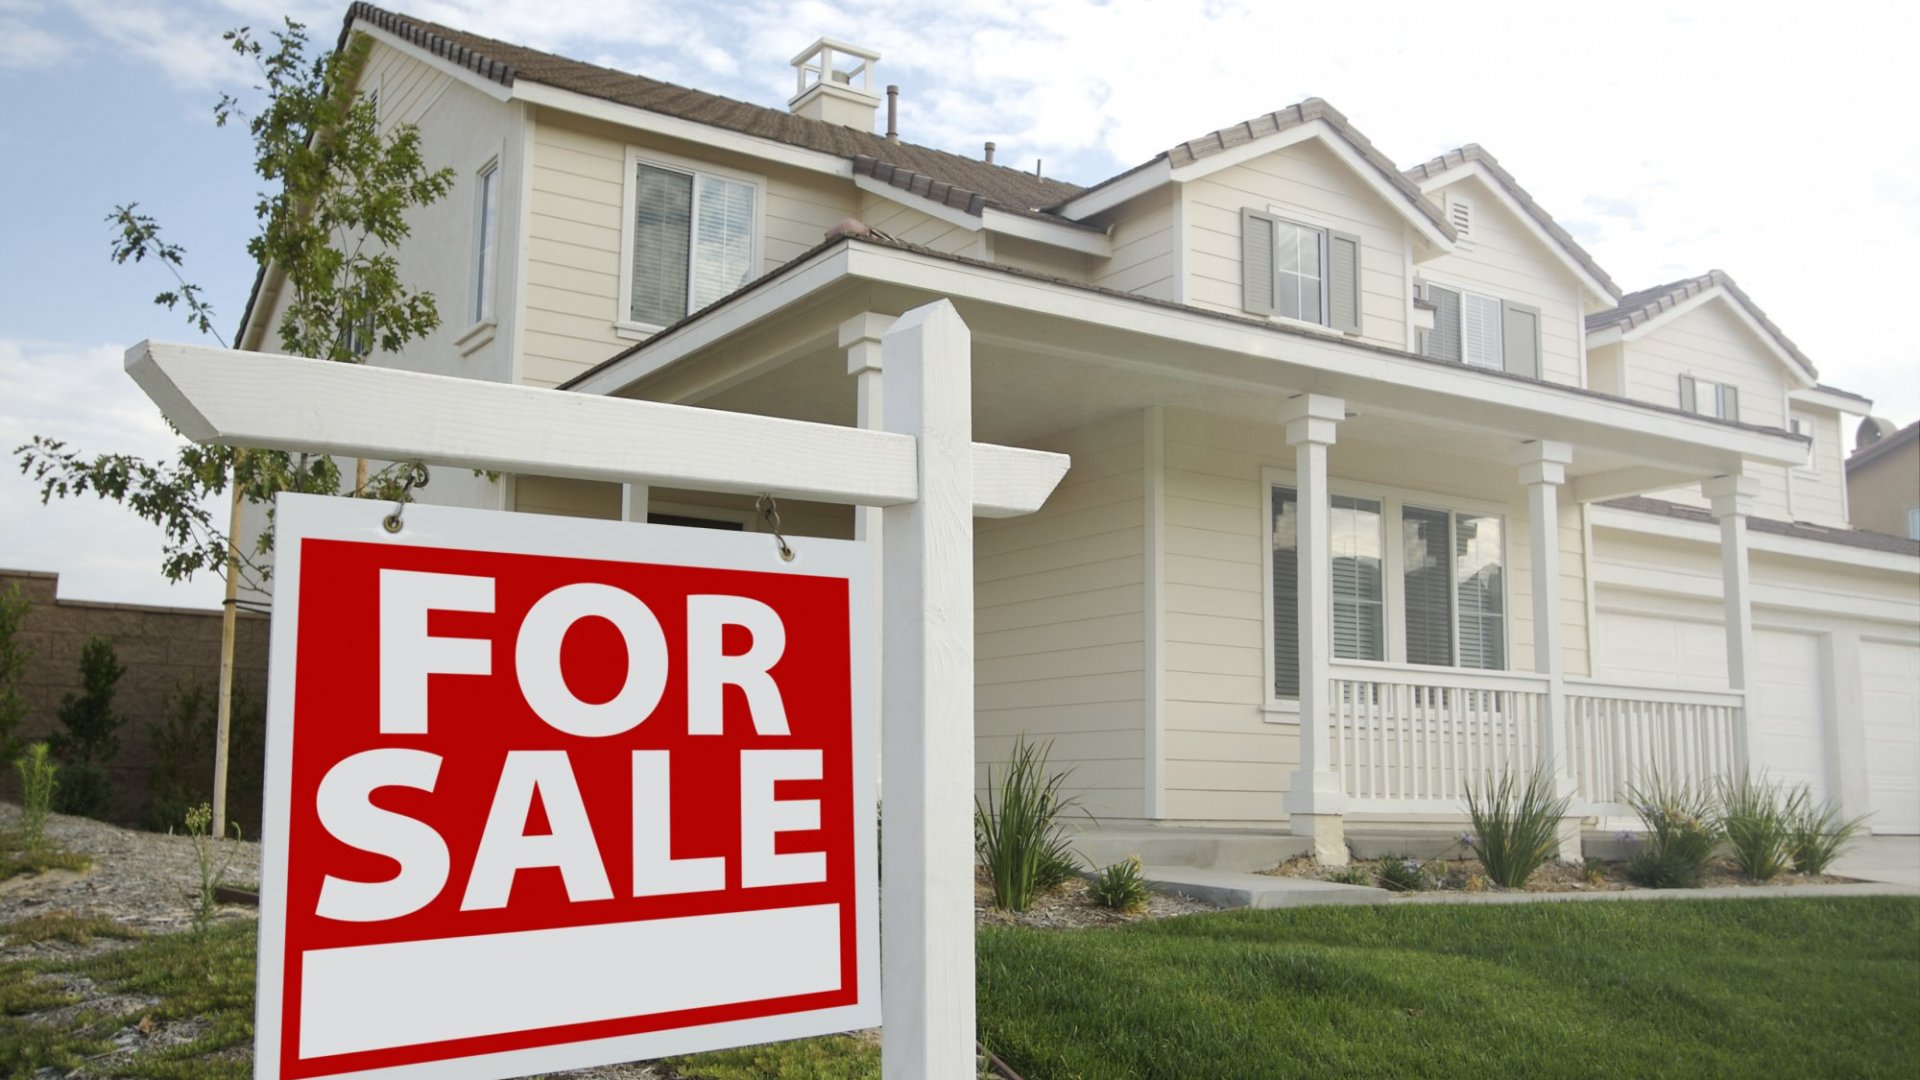 Beware of This Scam Targeting People Buying Homes